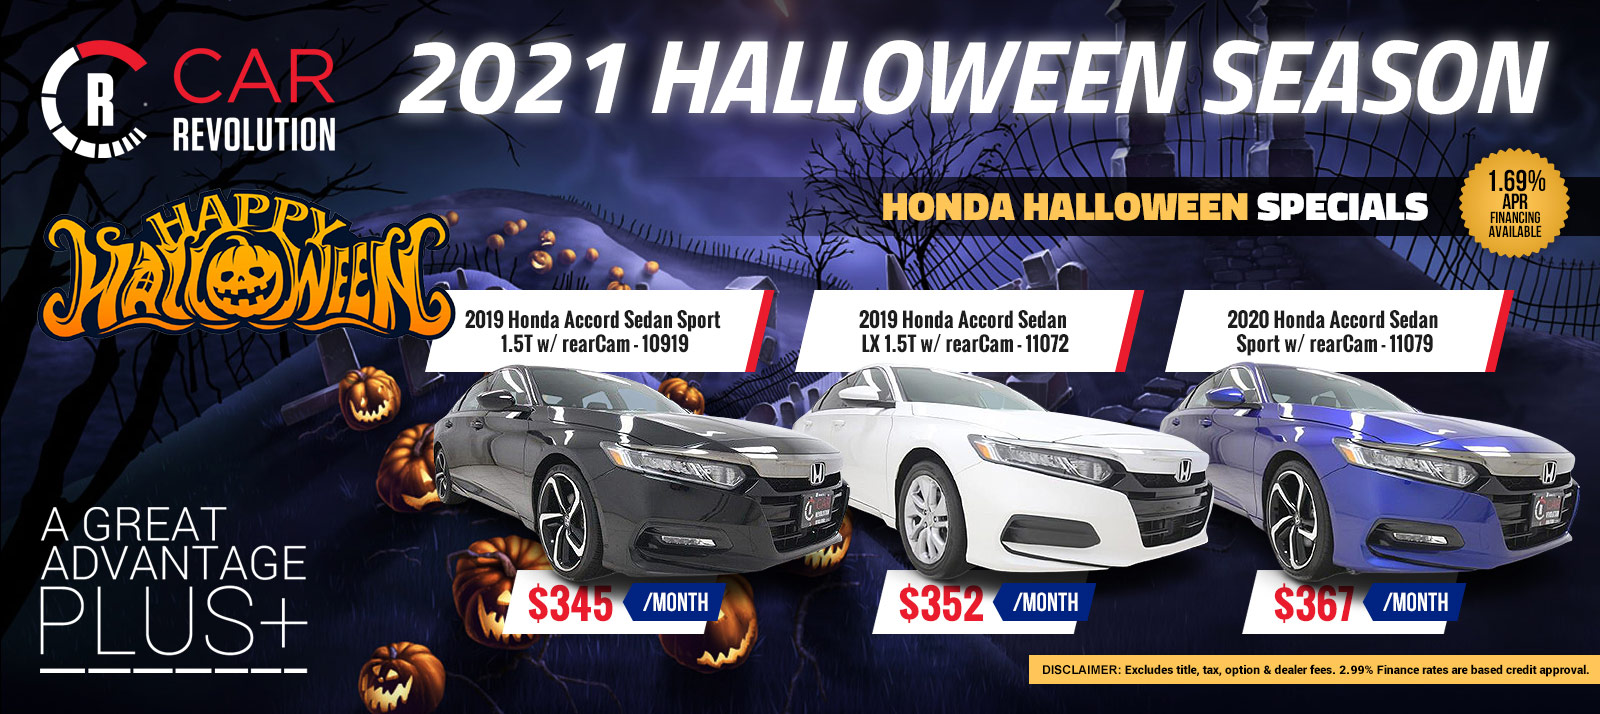 HONDA Halloween Season Specials!